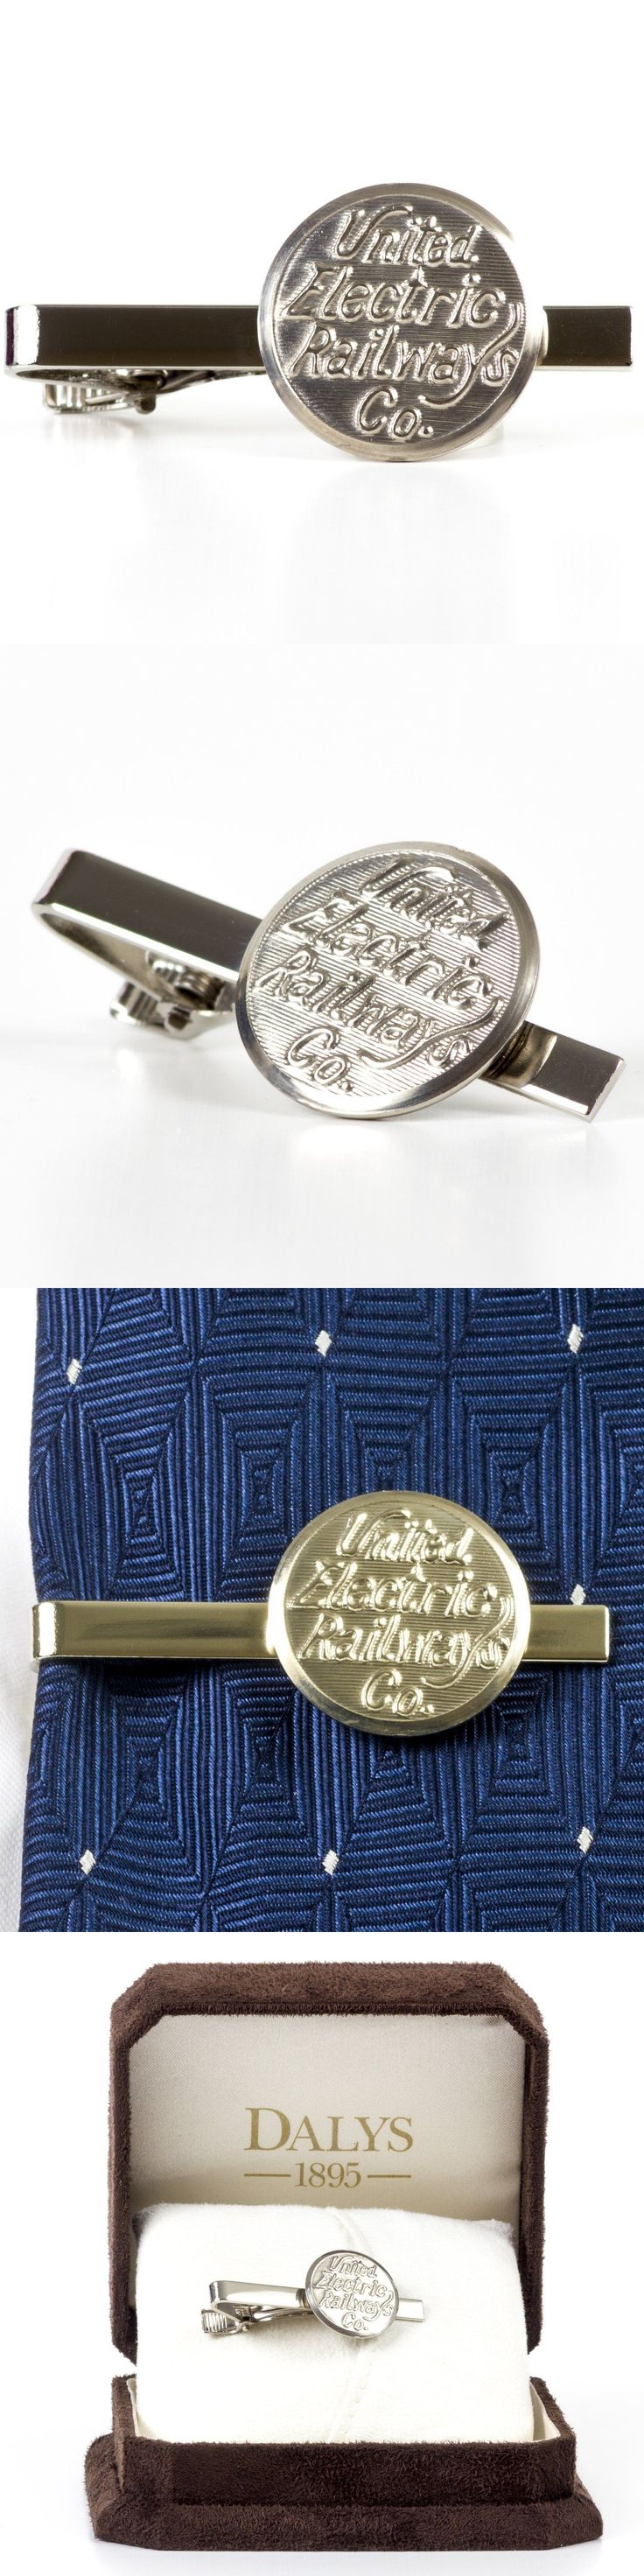 Tie Clasps and Tacks 10298: Compass Rose Men S Vintage United Electric Railways Tie Clip -> BUY IT NOW ONLY: $77 on eBay!